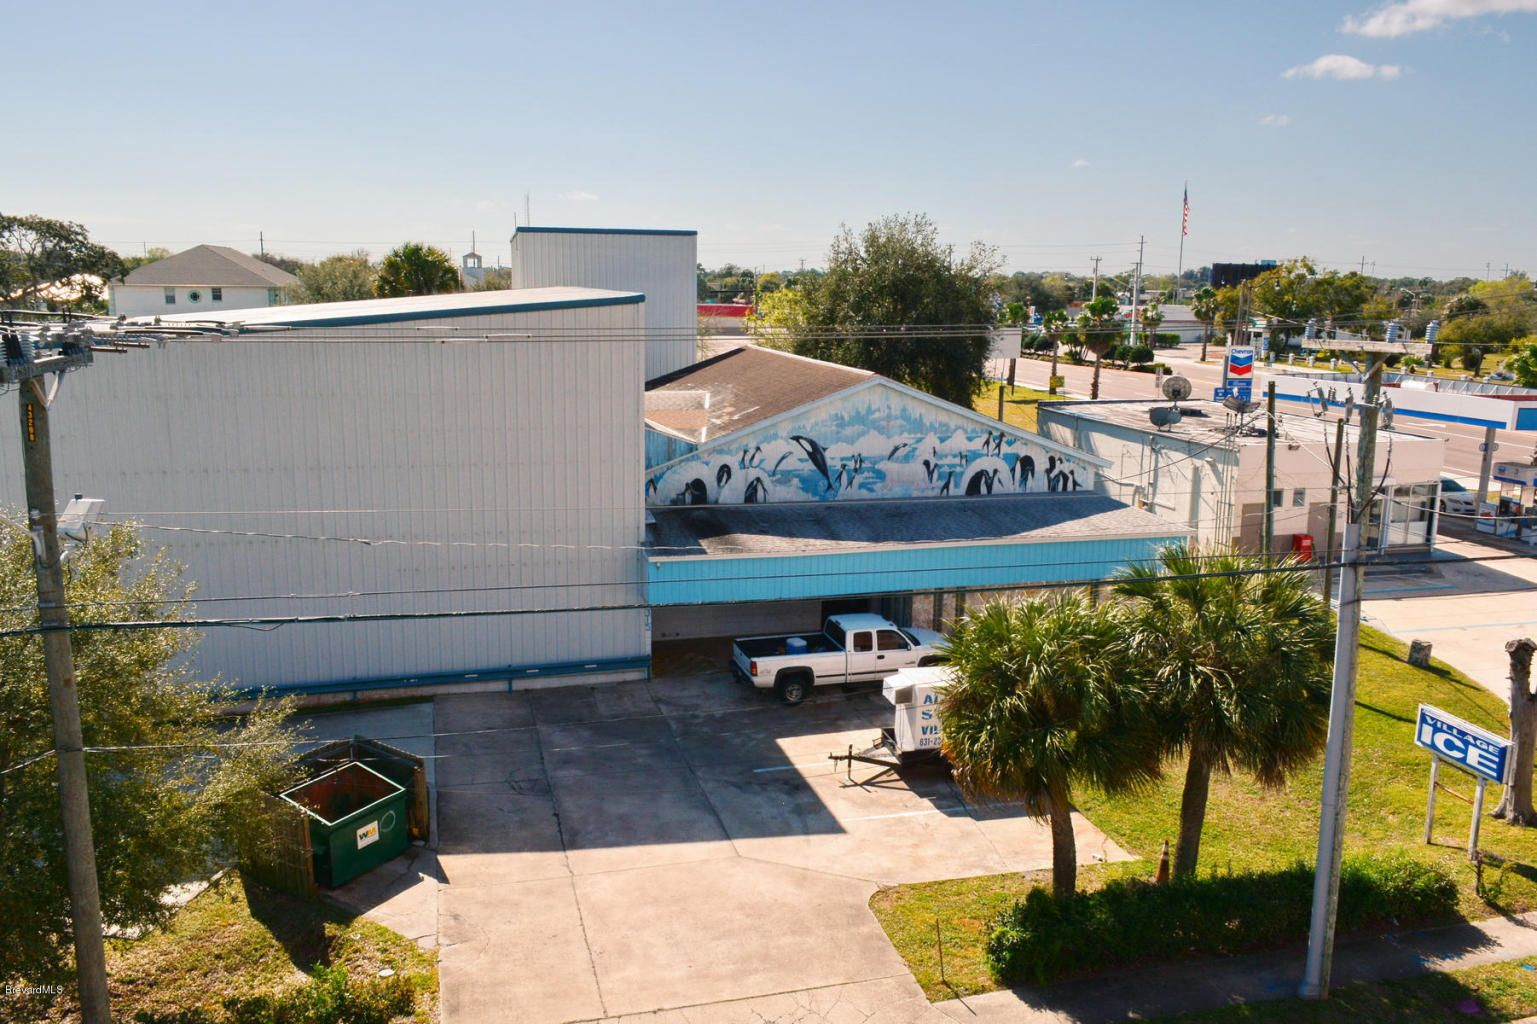 Building / property centrally located in the heart of Brevard County. Great location for refrigeration storage. The system gets down to 15 degrees f and has capability of adding additional systems to become a true storage freezer. TCommercial zoned C-C (Core Commercial). #lovefl #remaxfl